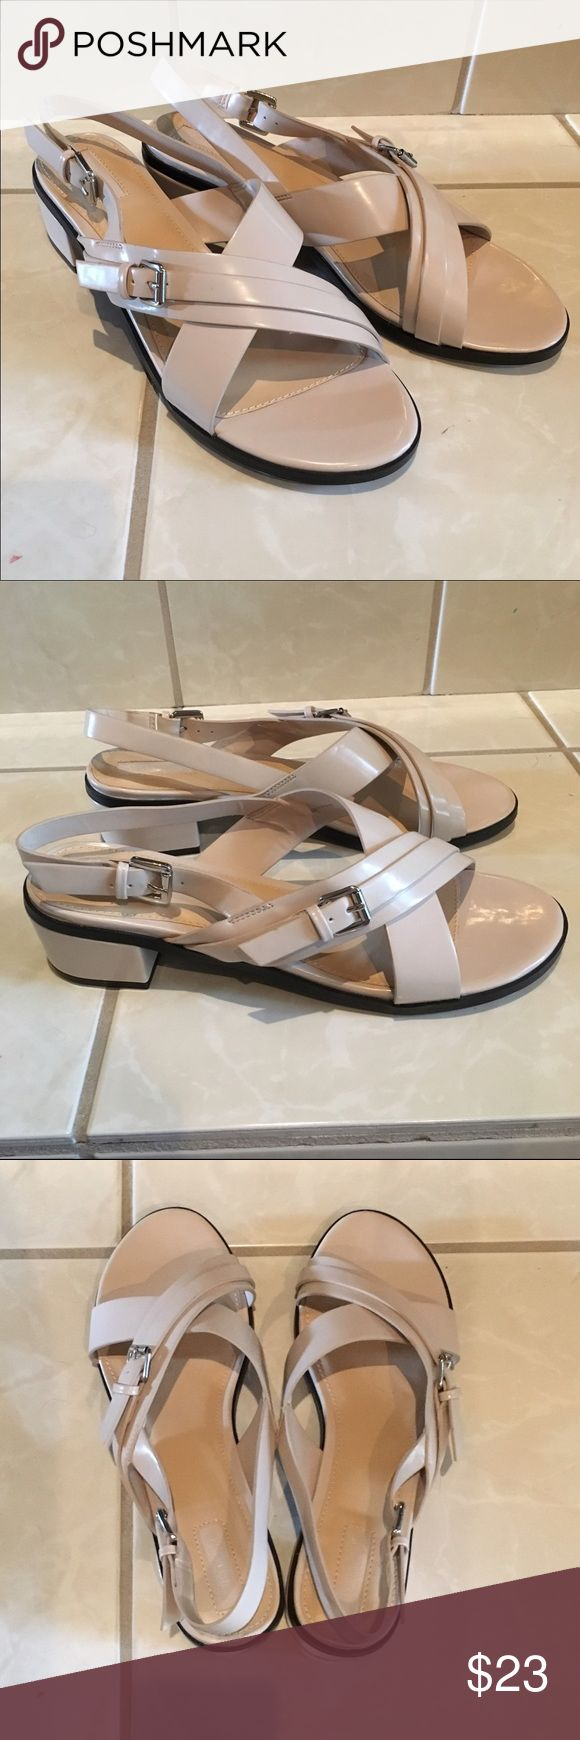 NWT F21 Nude Sandals Pretty sandals from F21! Brand new - no box, but stickers attached. Forever 21 Shoes Sandals